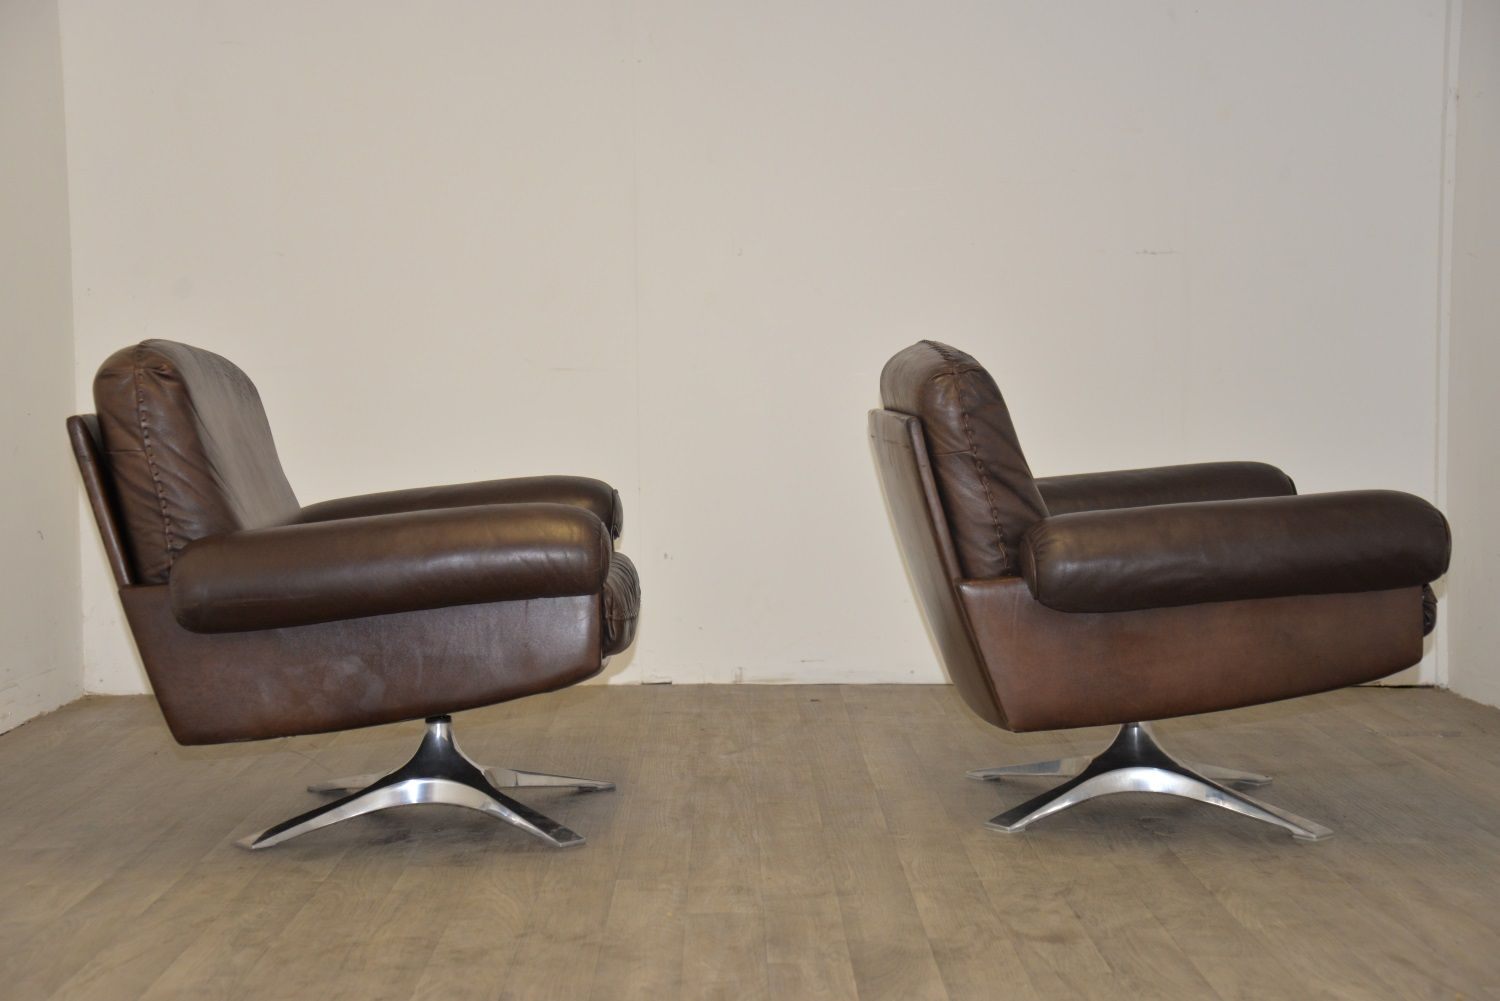 Poltrone Westwing Poltrone Vintage Anni 70 Idee Immagine Mobili